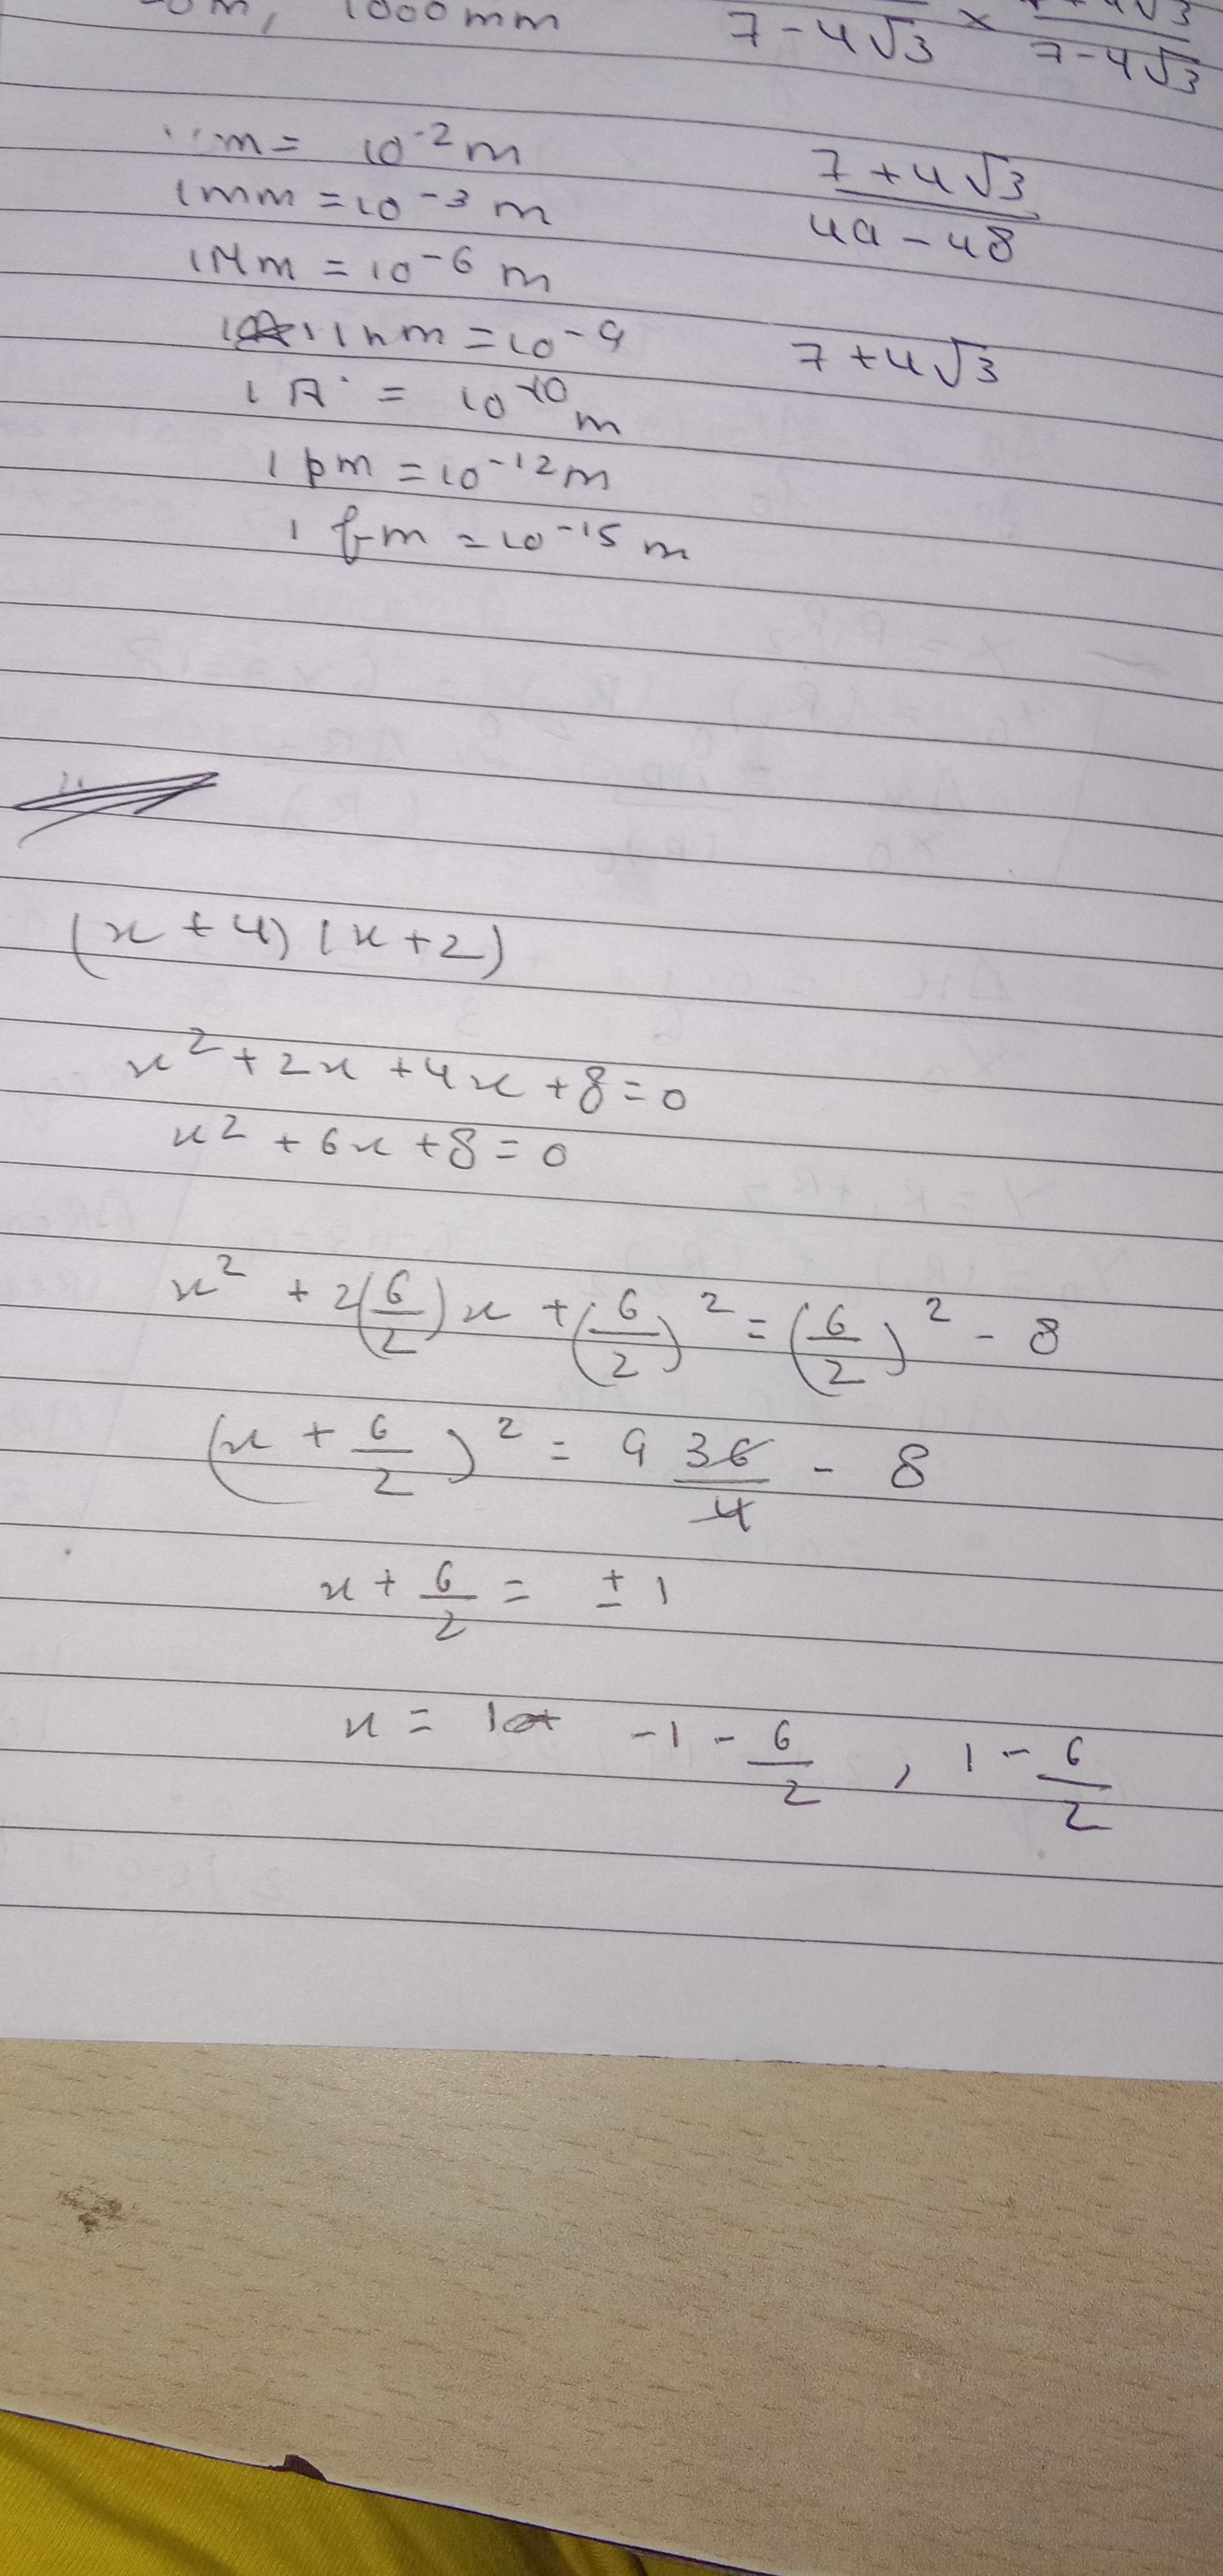 Complete The Equation By Completing The Square Method X 4